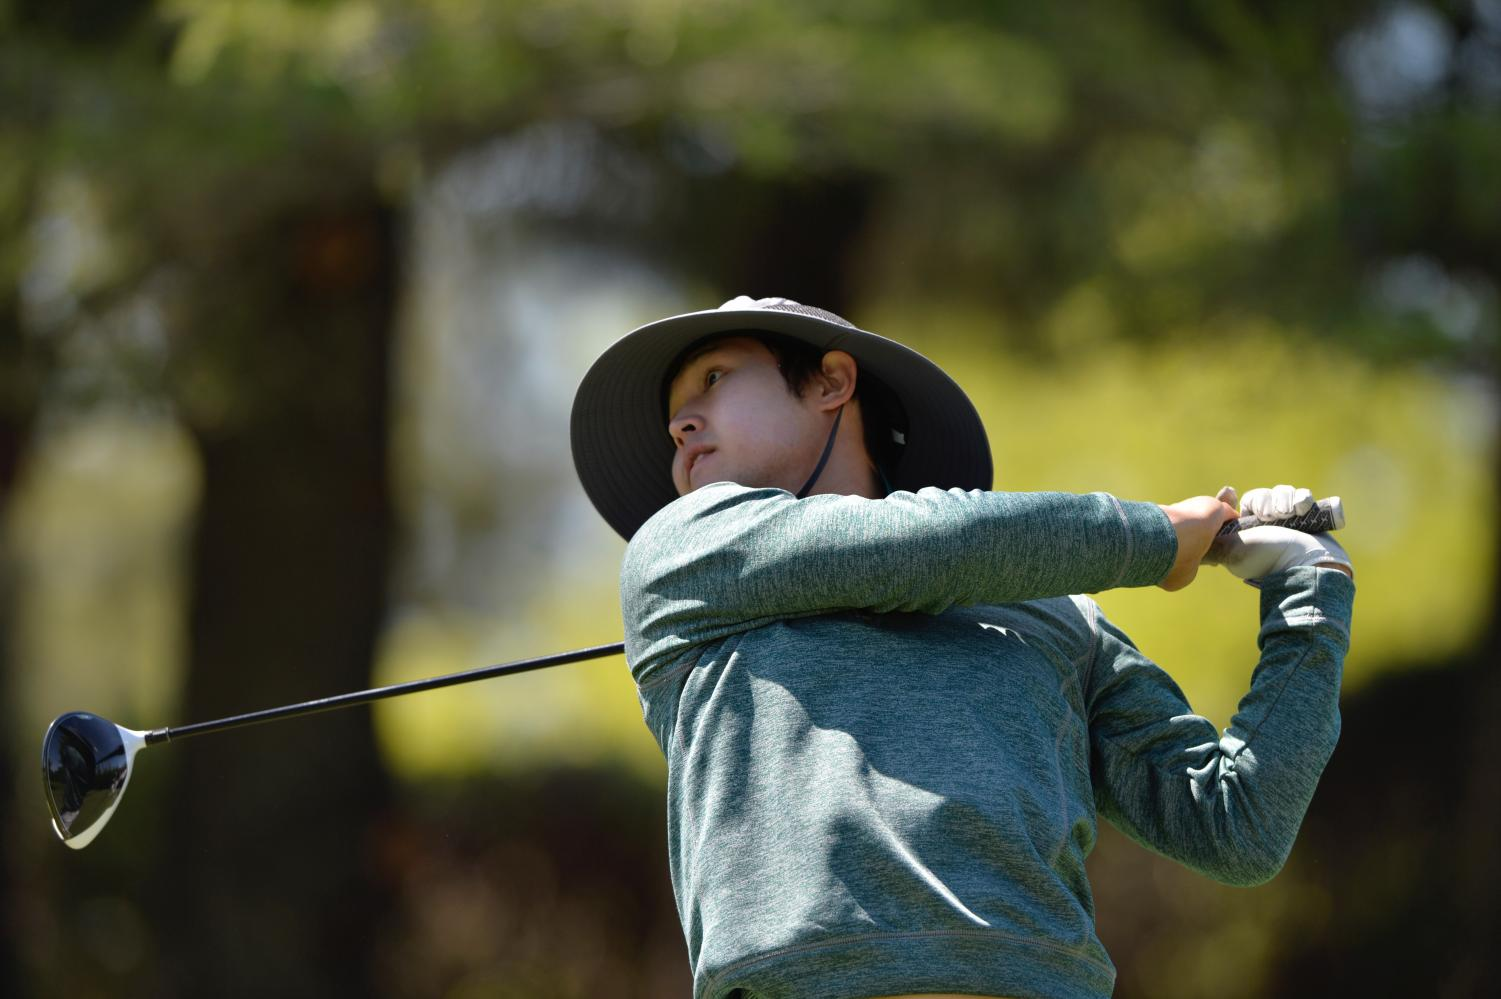 Sacramento State senior Wonje Choi, who transferred from San Diego State, competes in the Sacramento State Invitational on Monday, March 5, 2018. The Hornets will compete in the Big Sky Conference Championships from Friday to Sunday in Boulder City, Nevada.